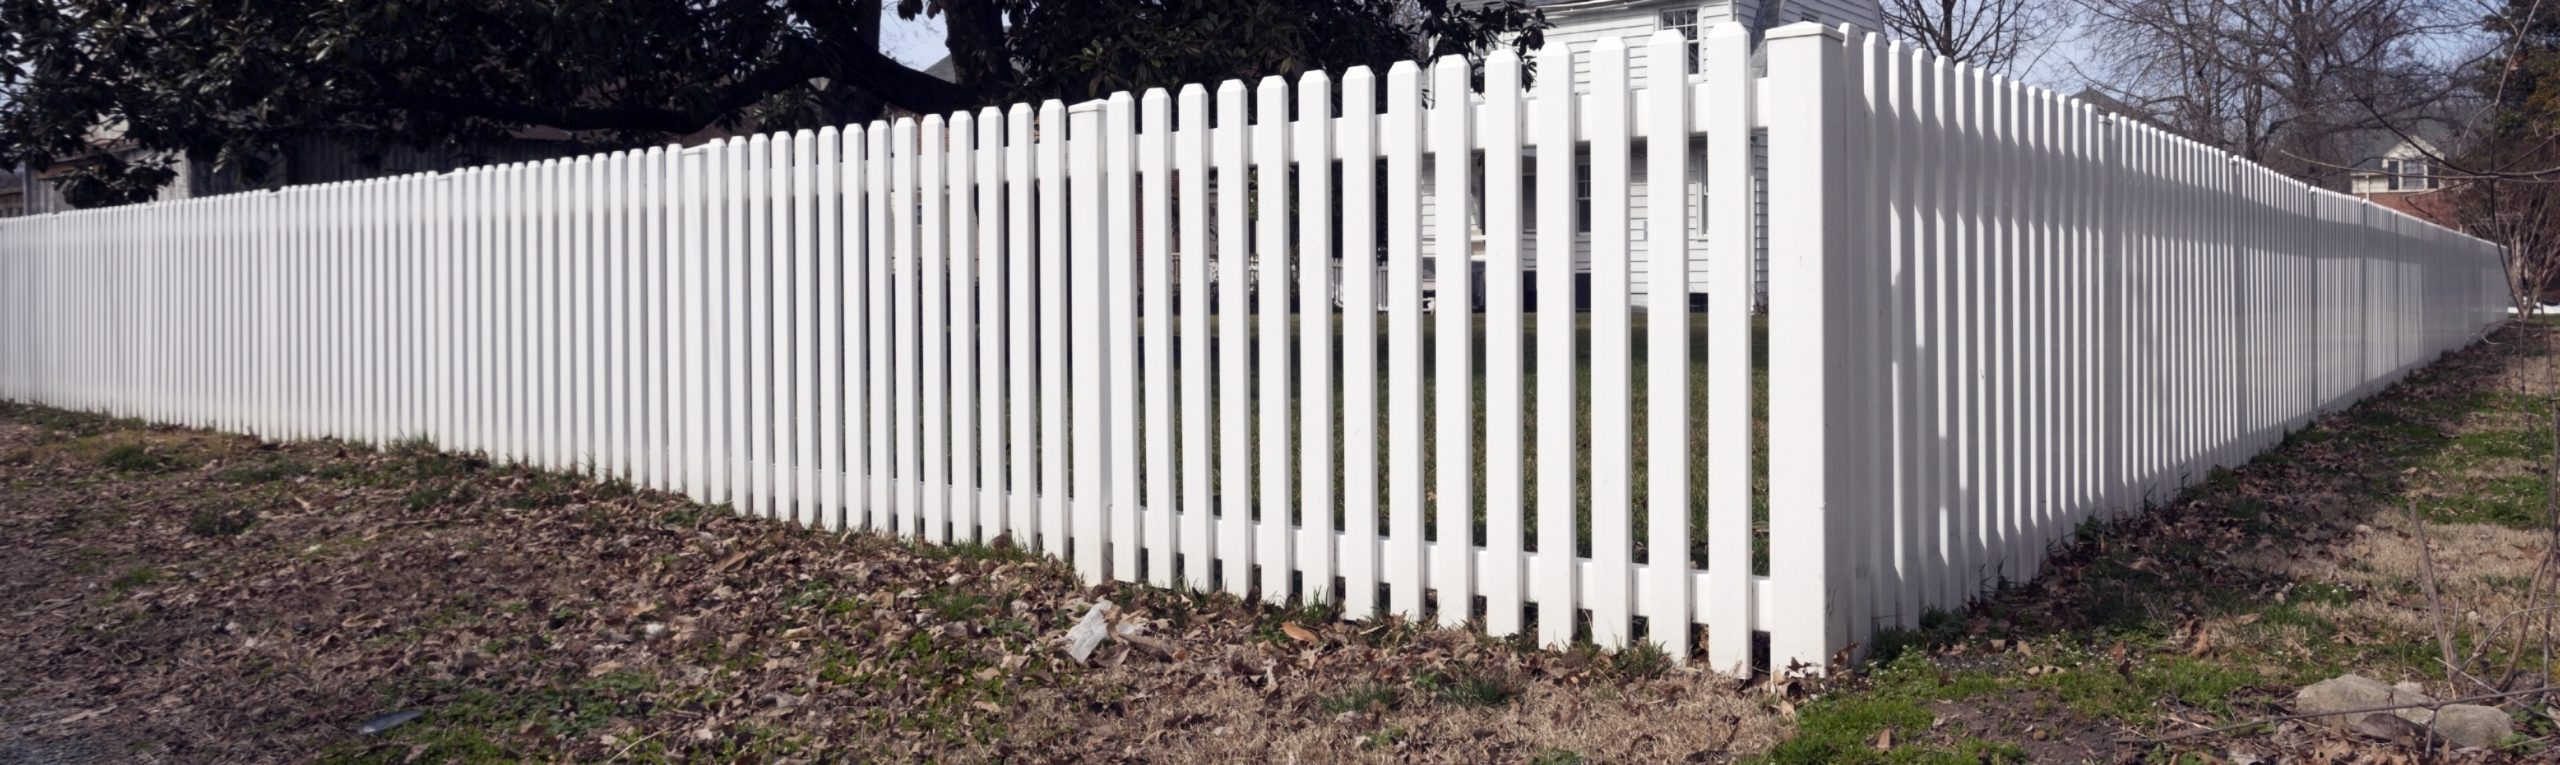 picket fences builder fence contractor little rock arkansas